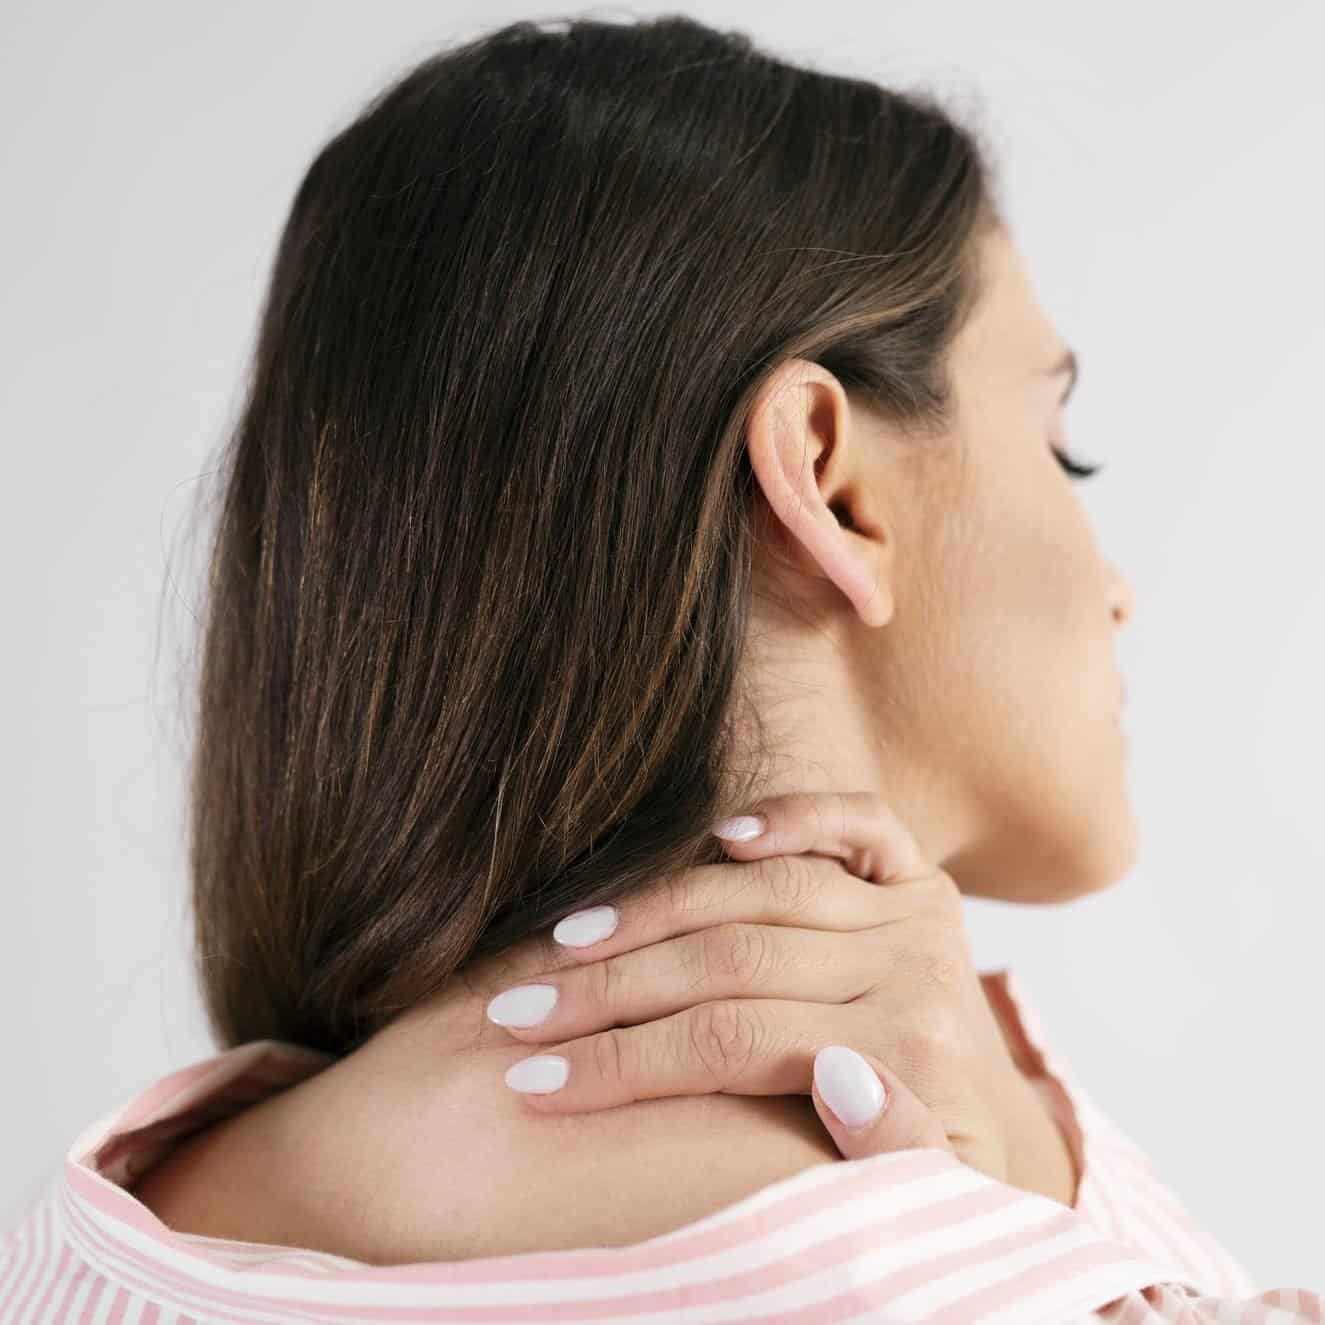 Rear view of young woman suffering from neck pain